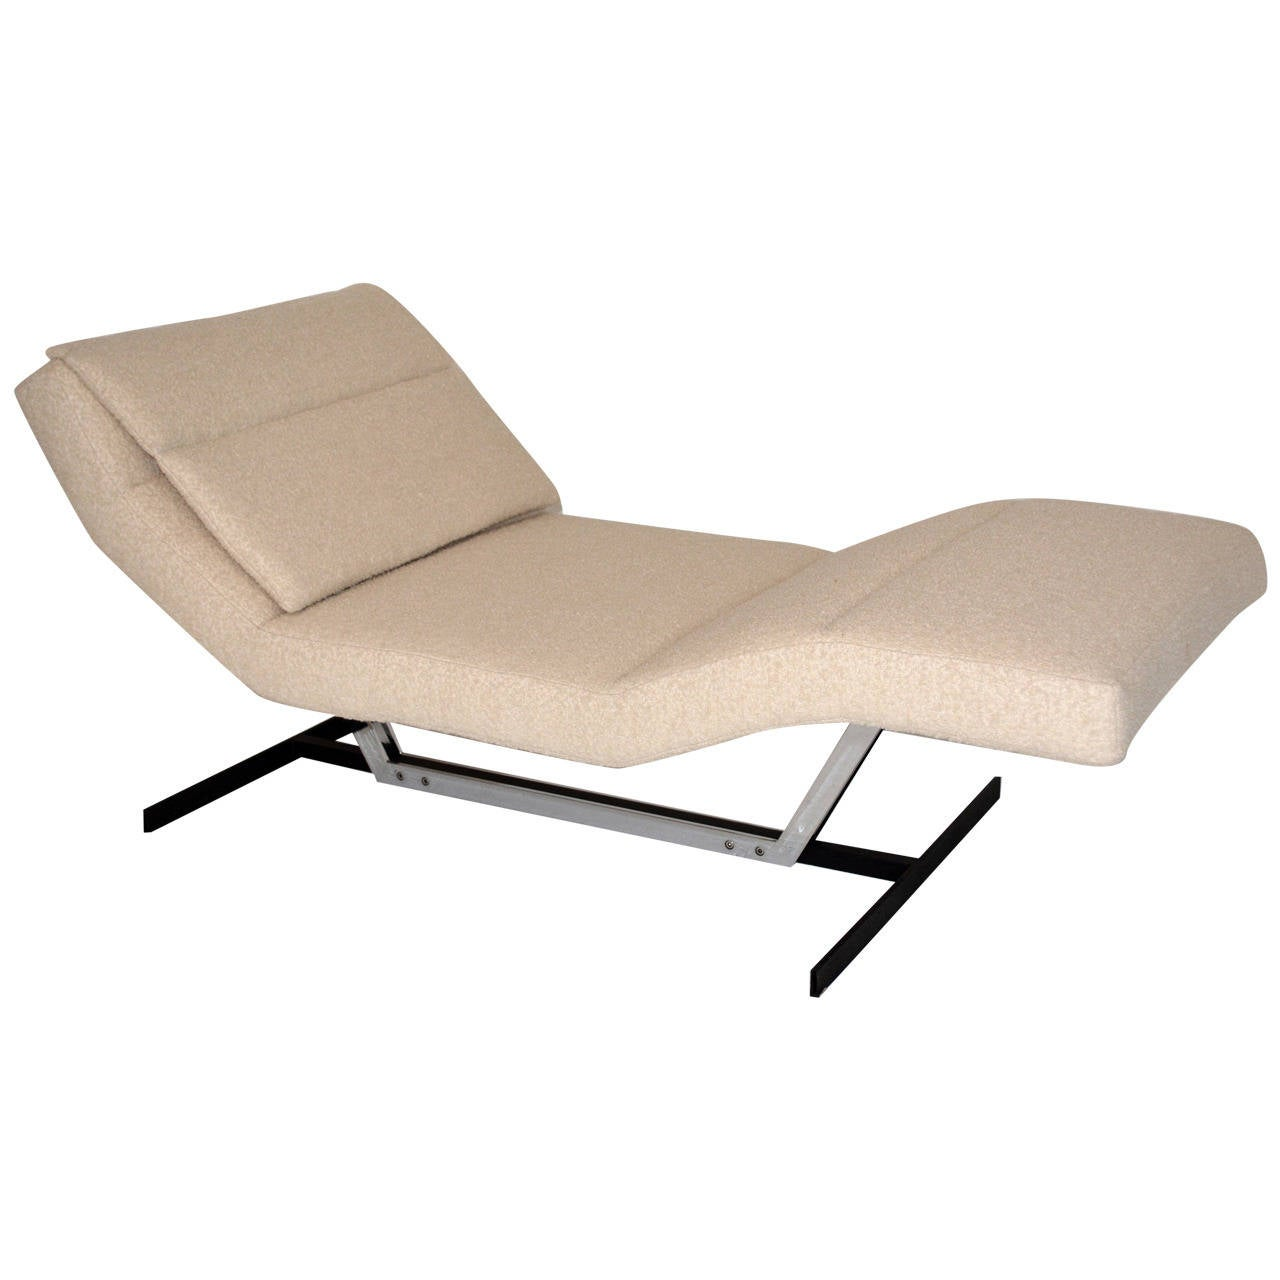 Saporiti chaise longue at 1stdibs for Chaise longue manufacturers